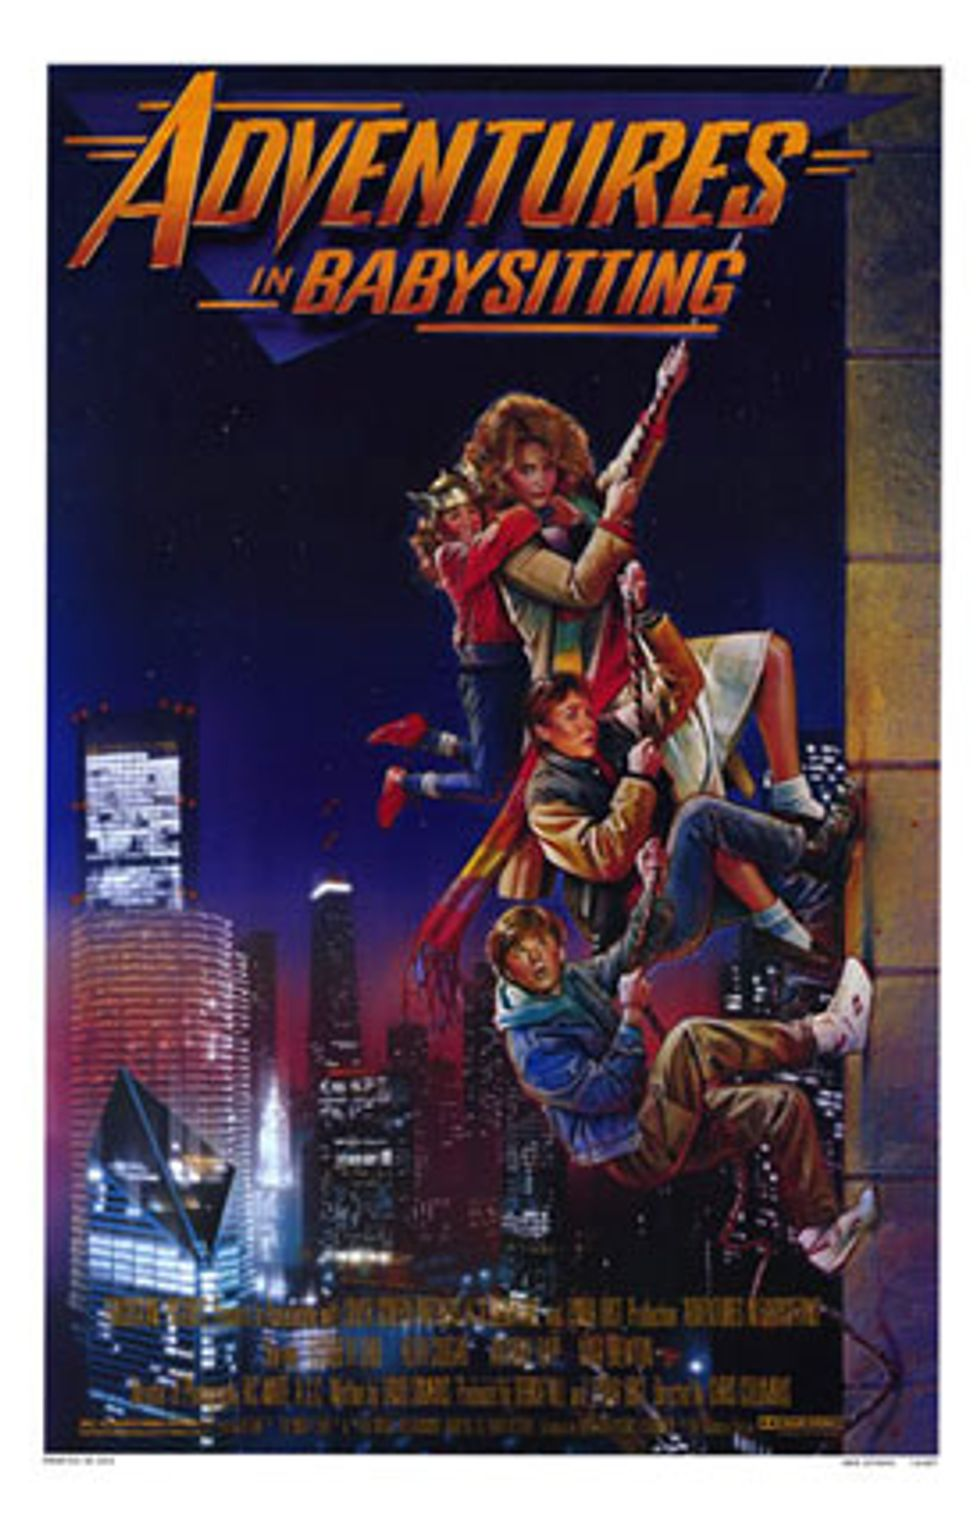 The New Adventures in Babysitting